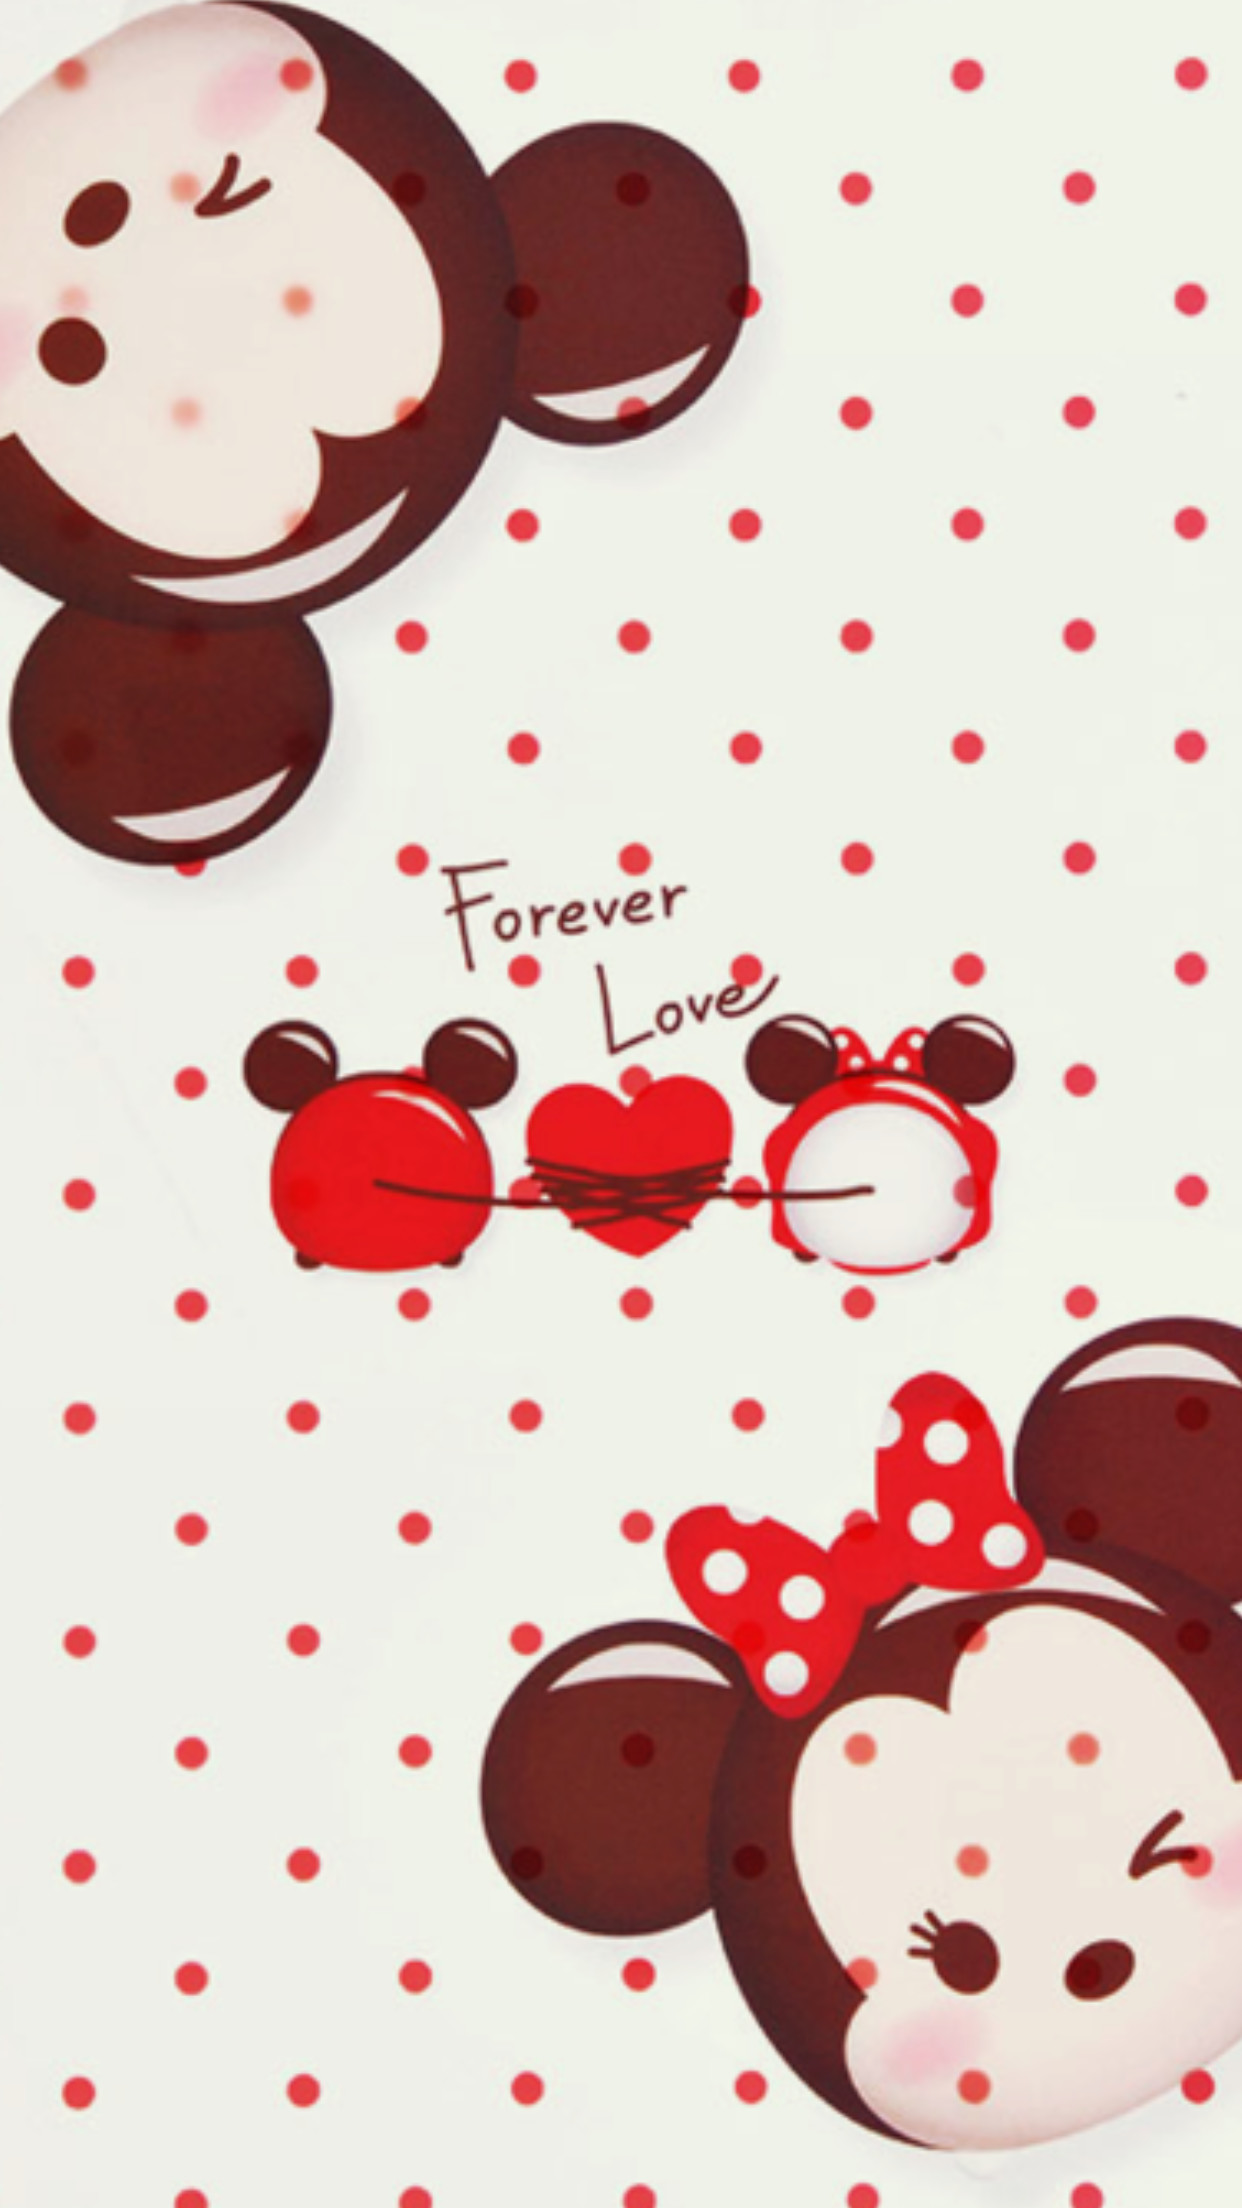 2560x1440 Mickey And Minnie Mouse Love Couple Wallpaper Hd Wallpapers13